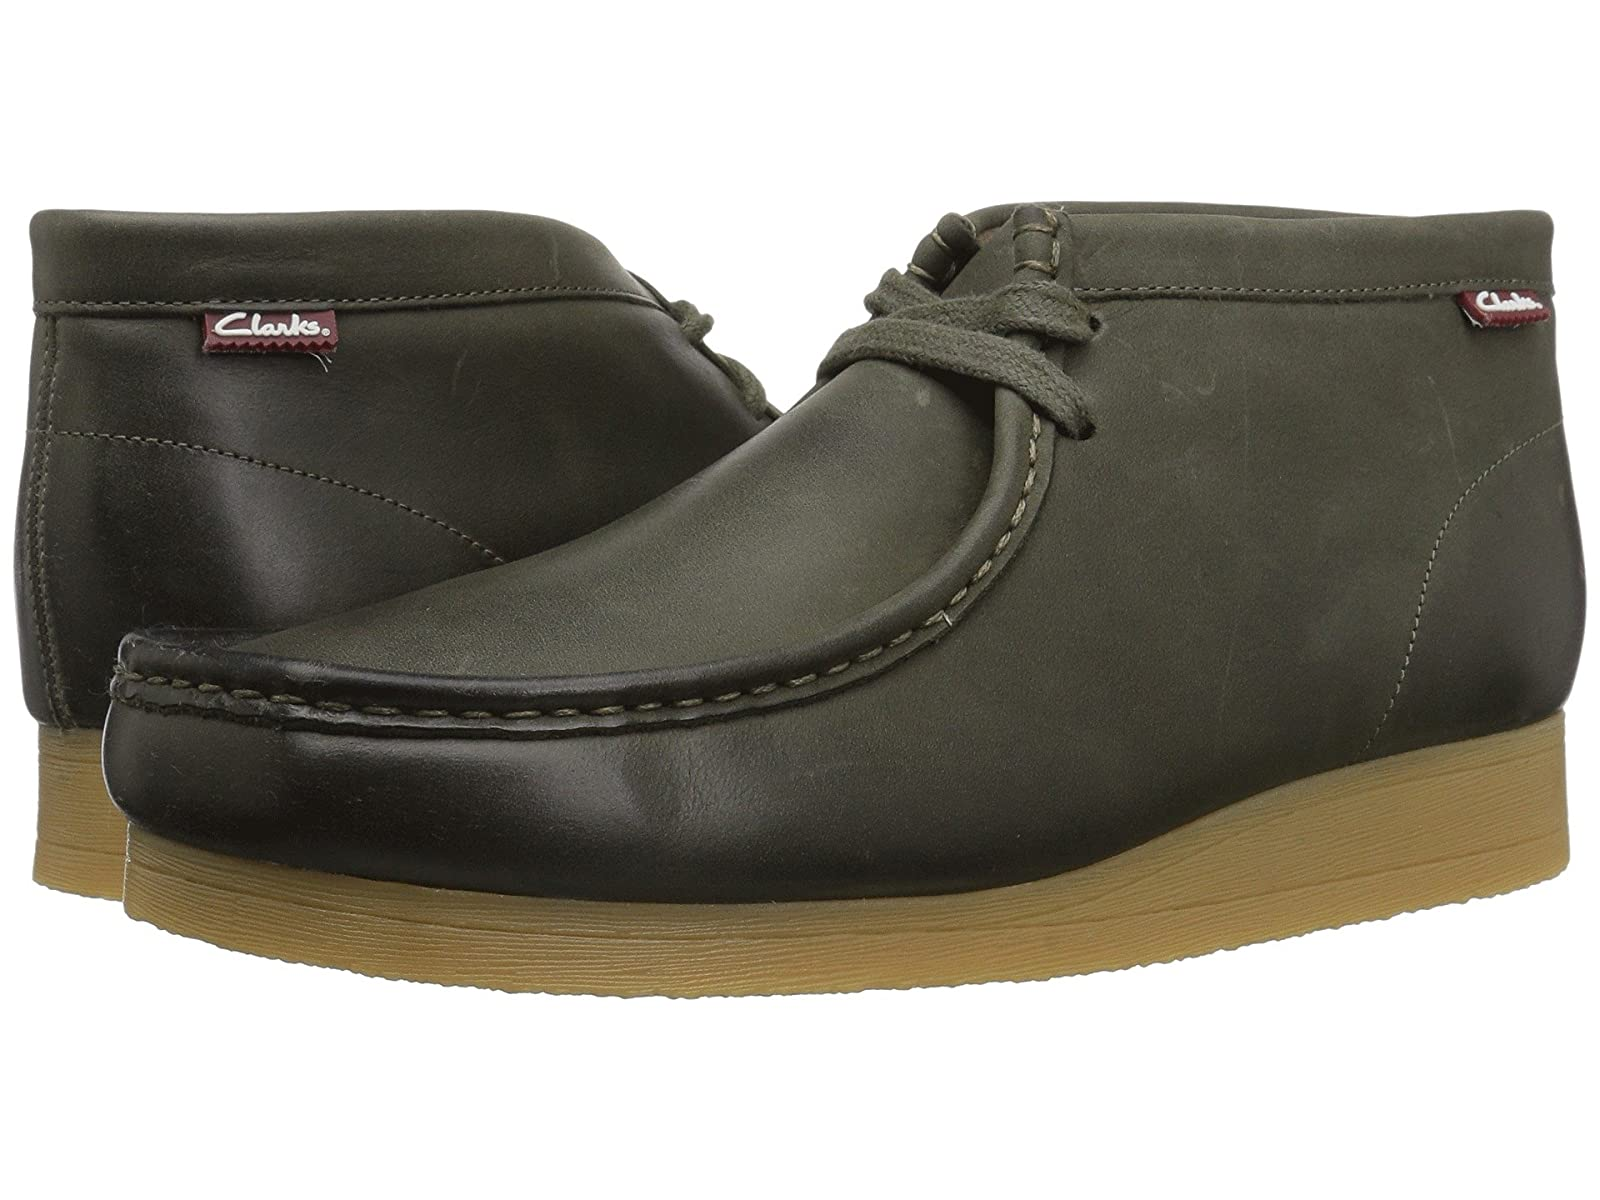 Clarks Stinson HiCheap and distinctive eye-catching shoes